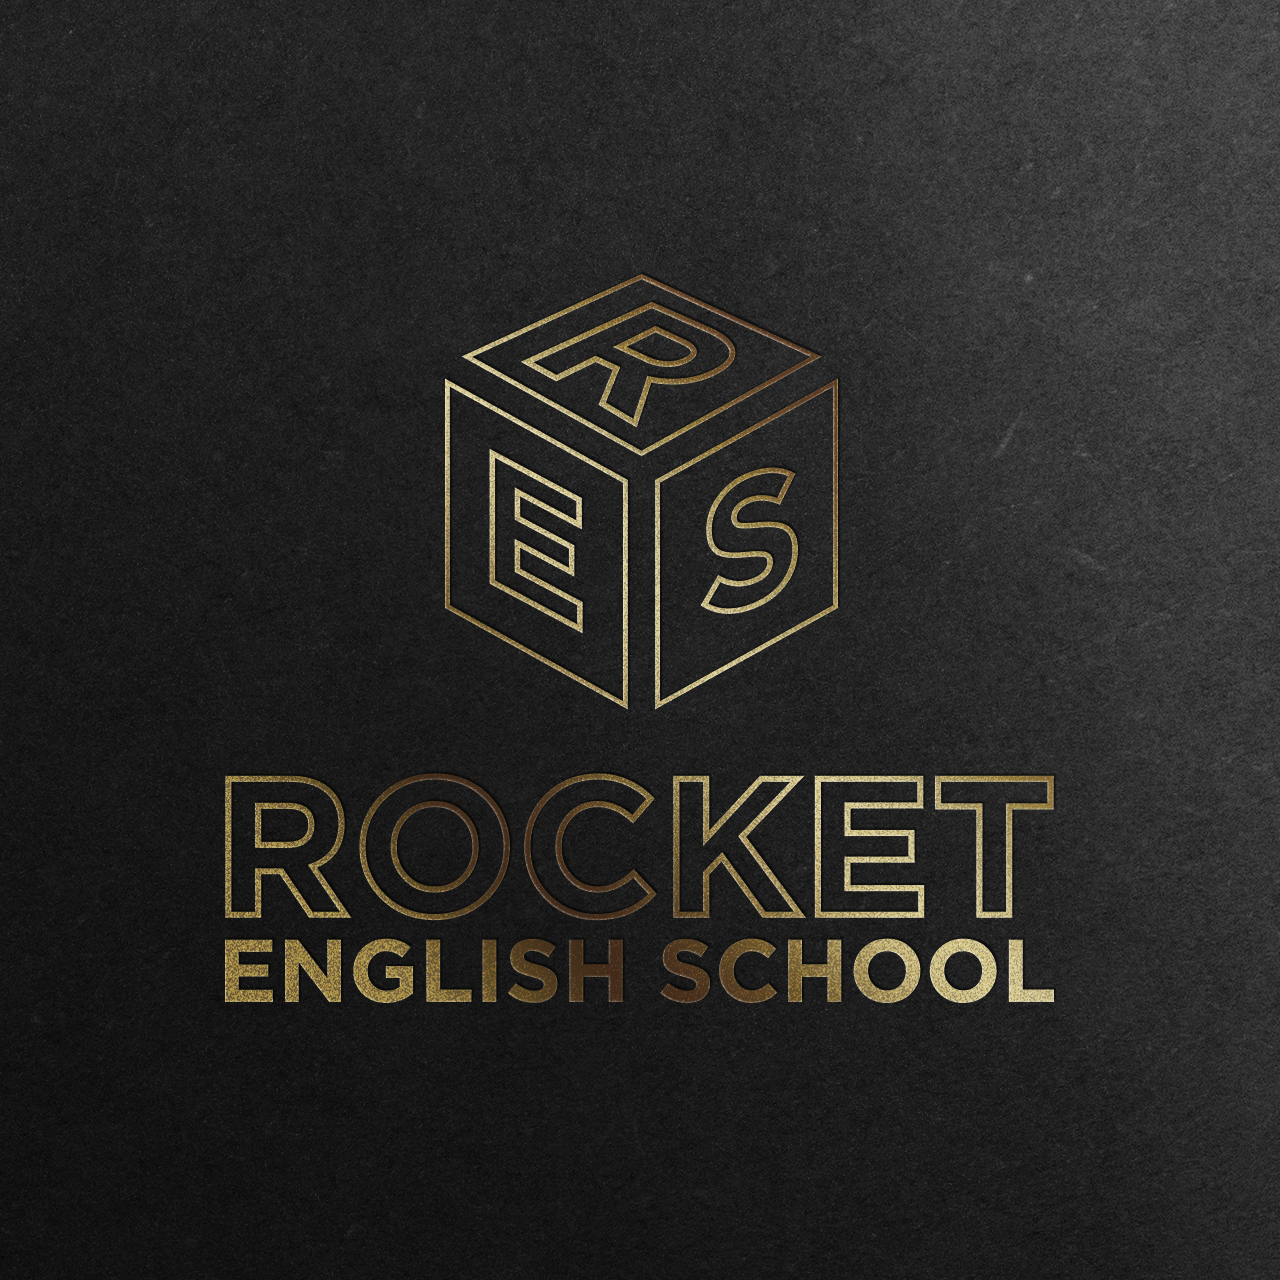 rocket english school-logo-mockup-gold